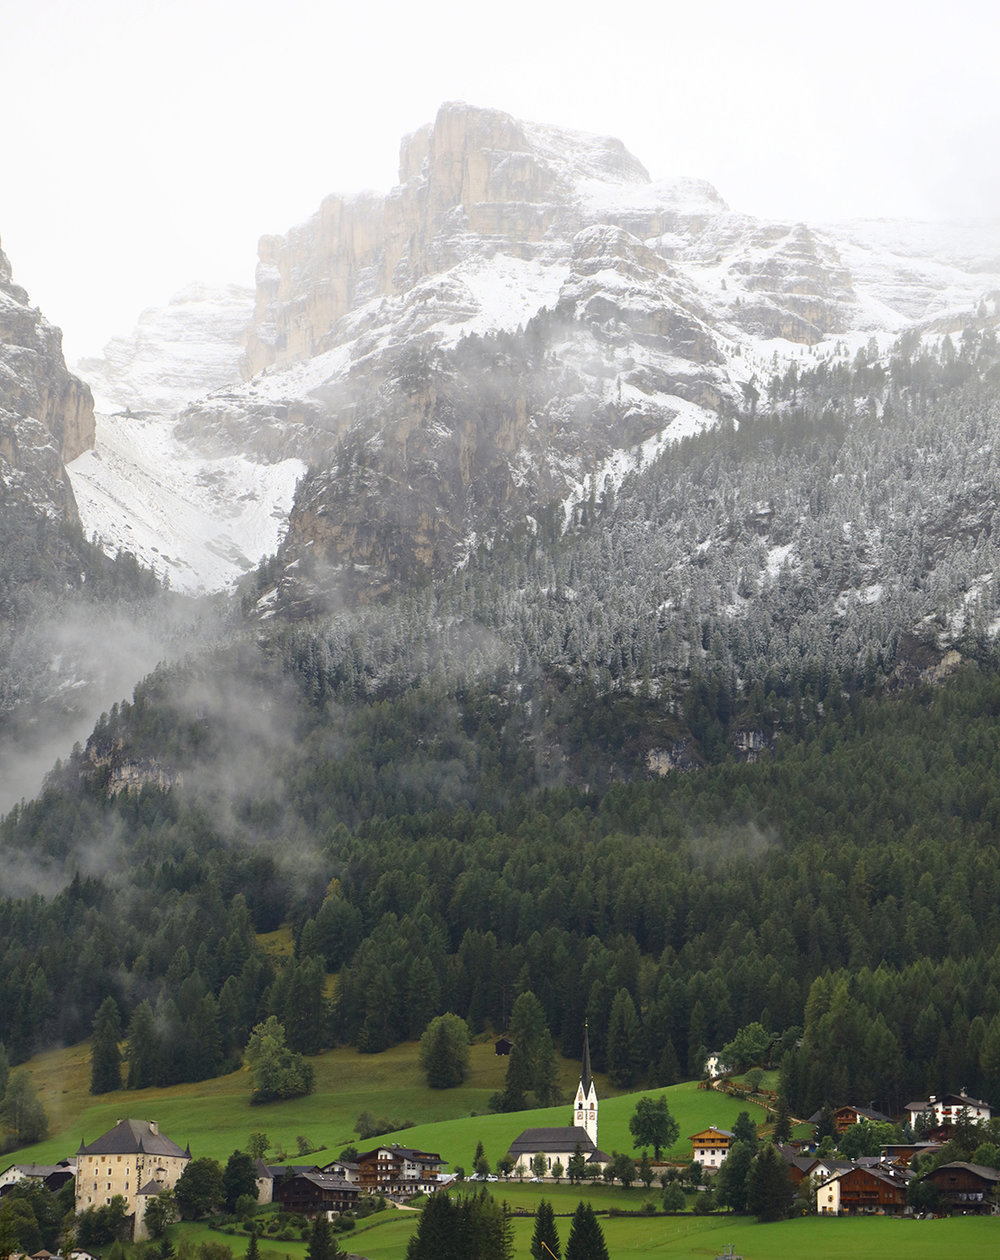 San Cassiano and the Dolomites